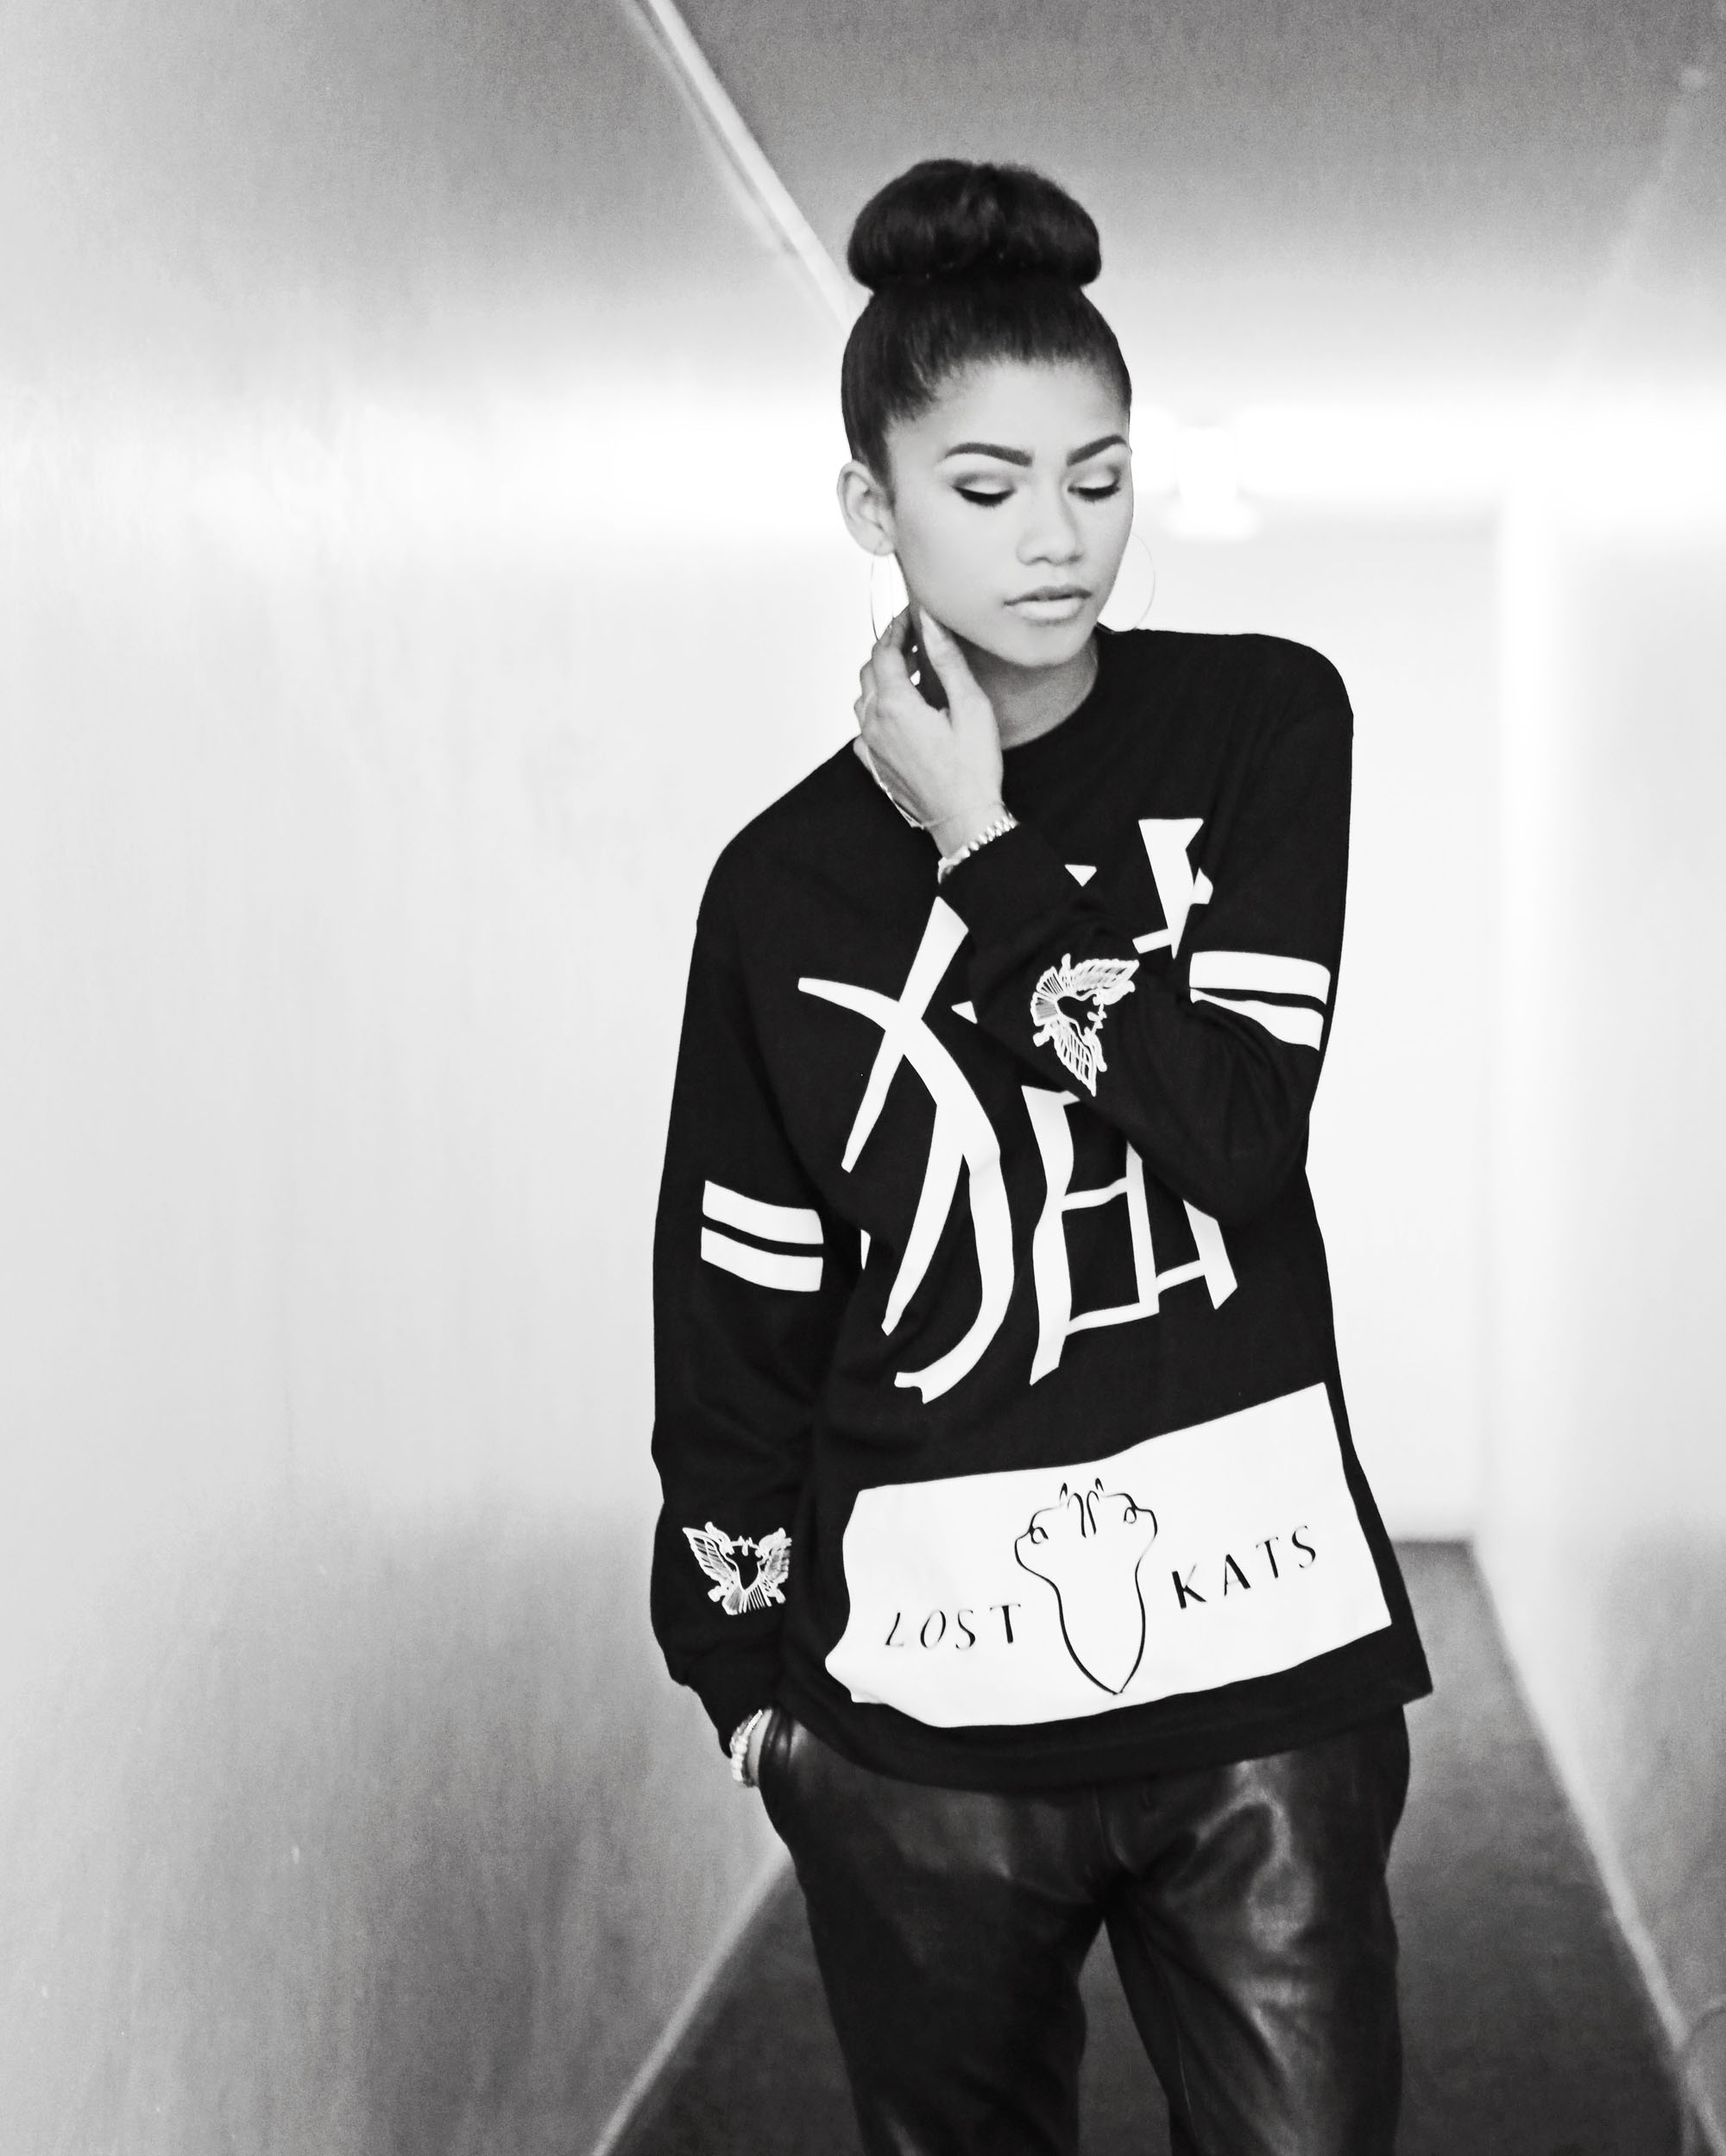 Photo Shoot Pretty  Zendaya Coleman Poses For Lost Kats 2013 LookbookZendaya 2013 Photoshoot